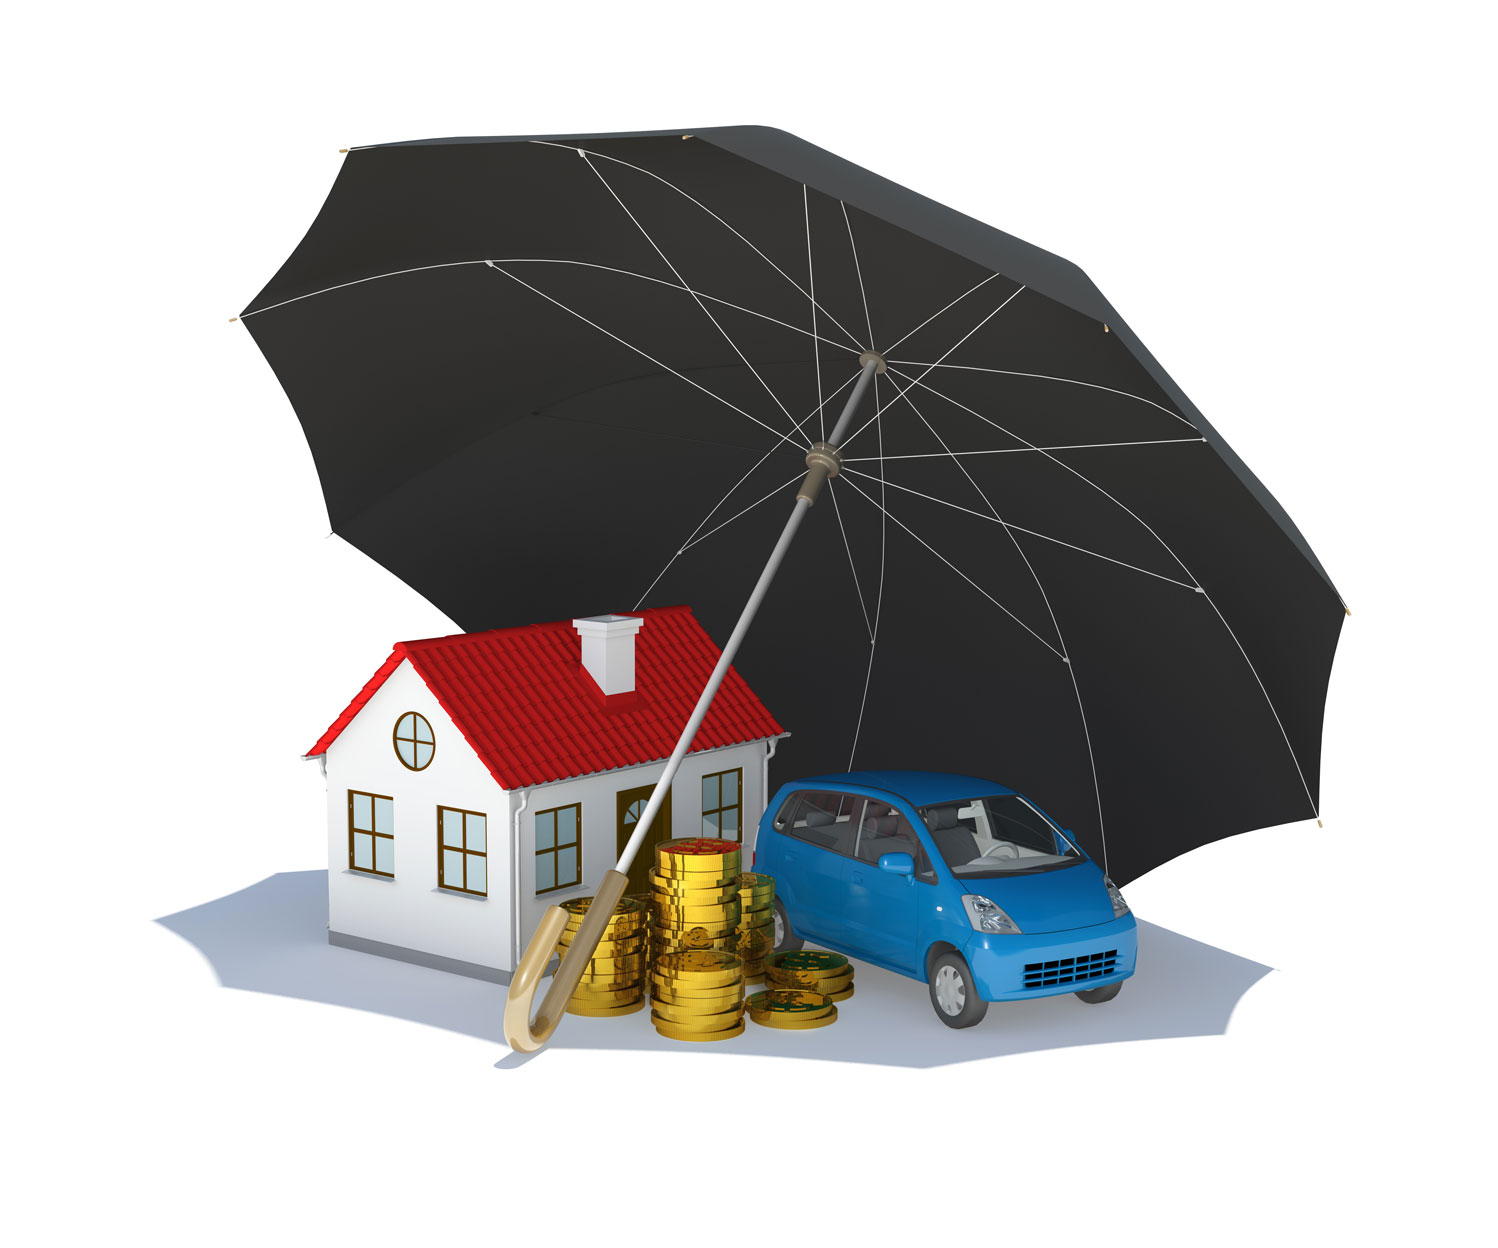 tampa-umbrella-insurance